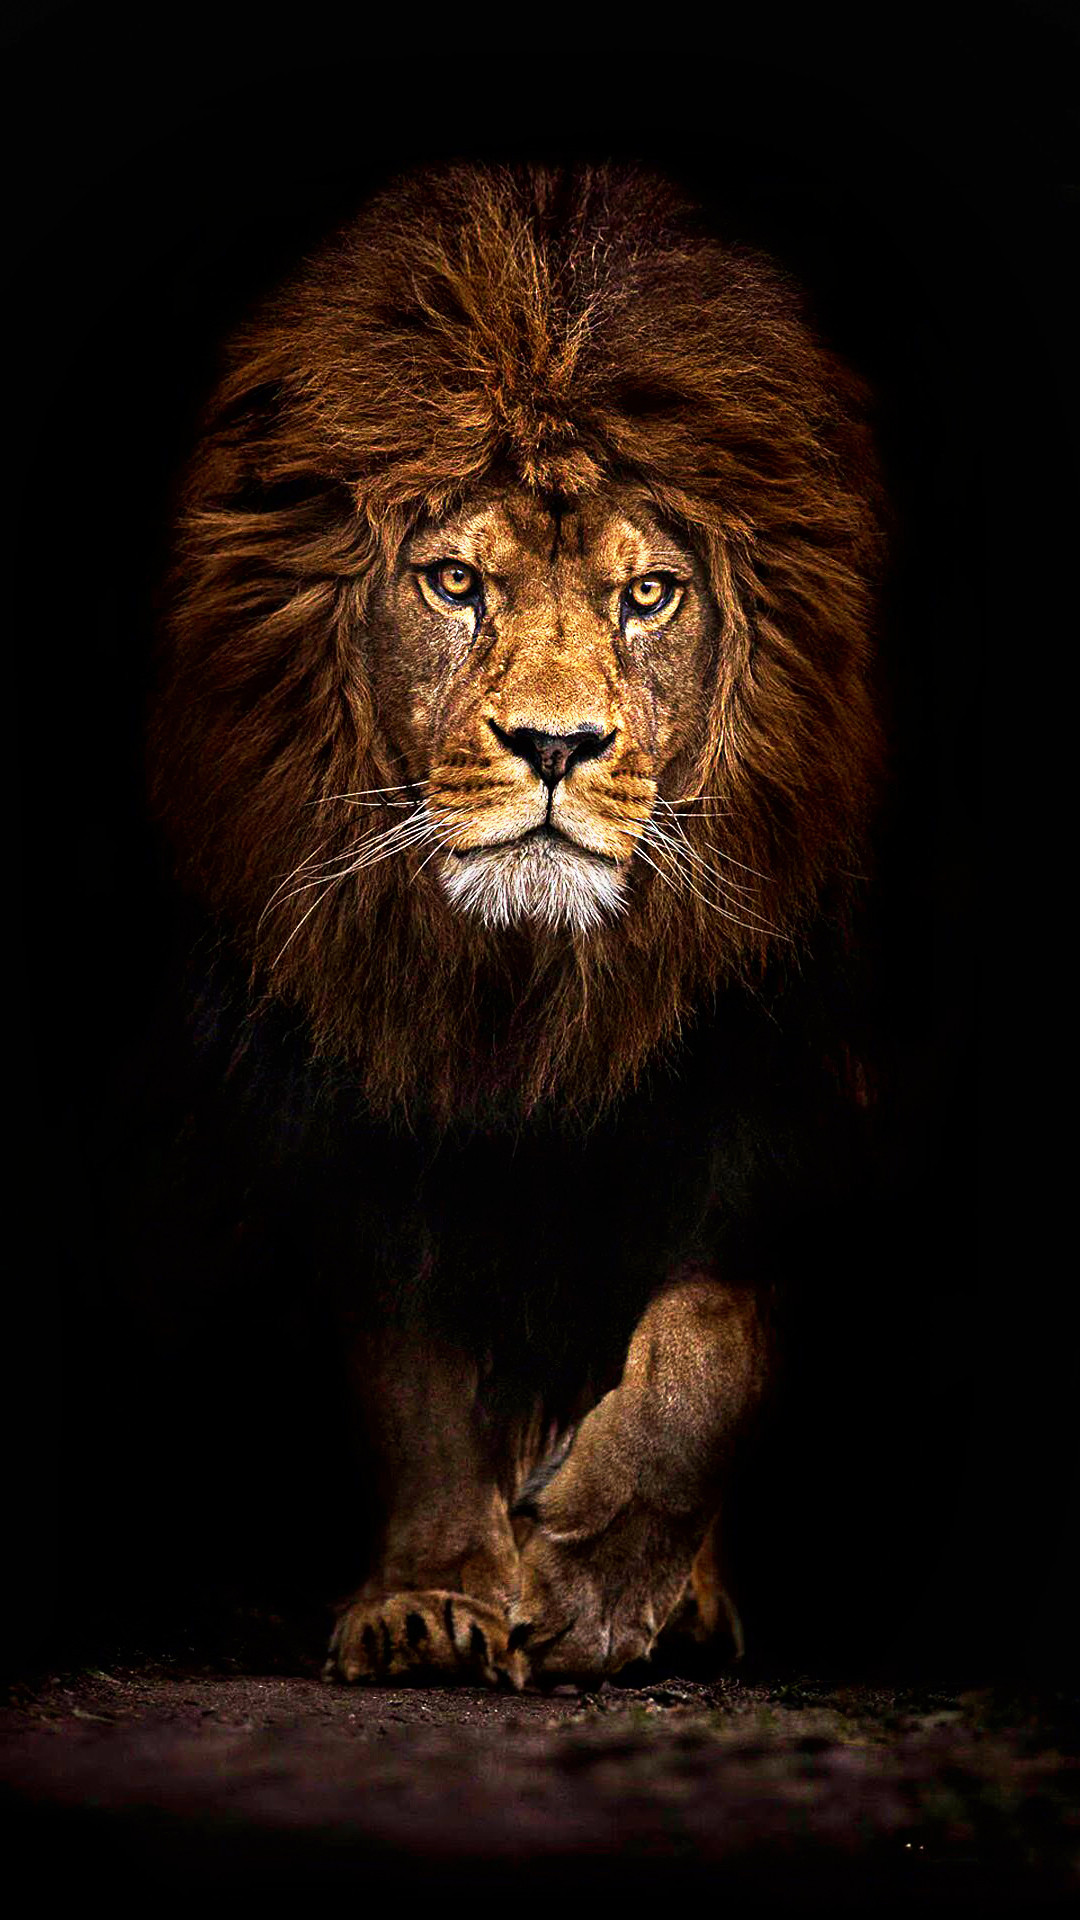 wxxh cool lion wallpapers for iphone ultra hd 4k